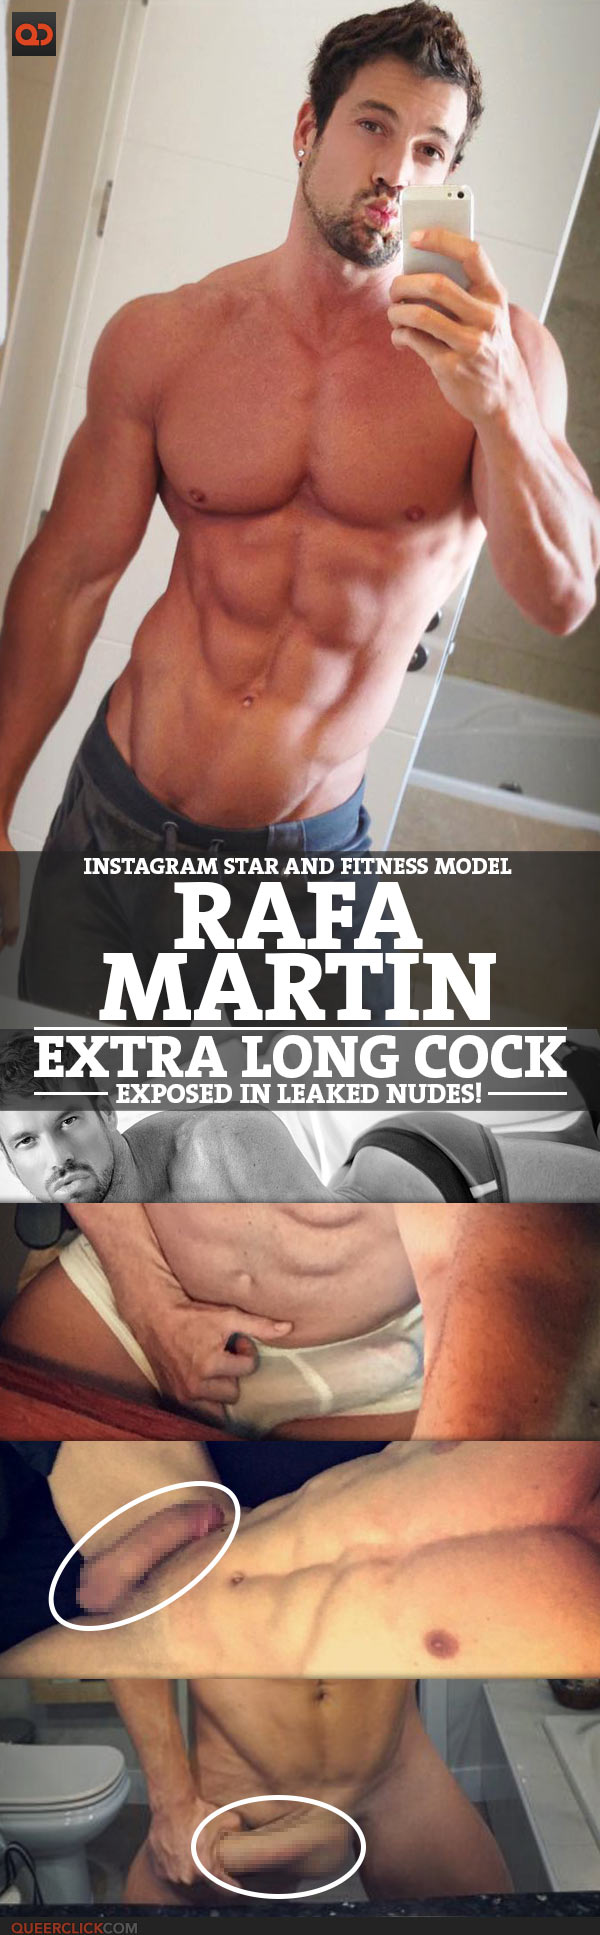 Rafa Martín, Instagram Star And Fitness Model, Extra Long Cock Exposed In Leaked Nudes!